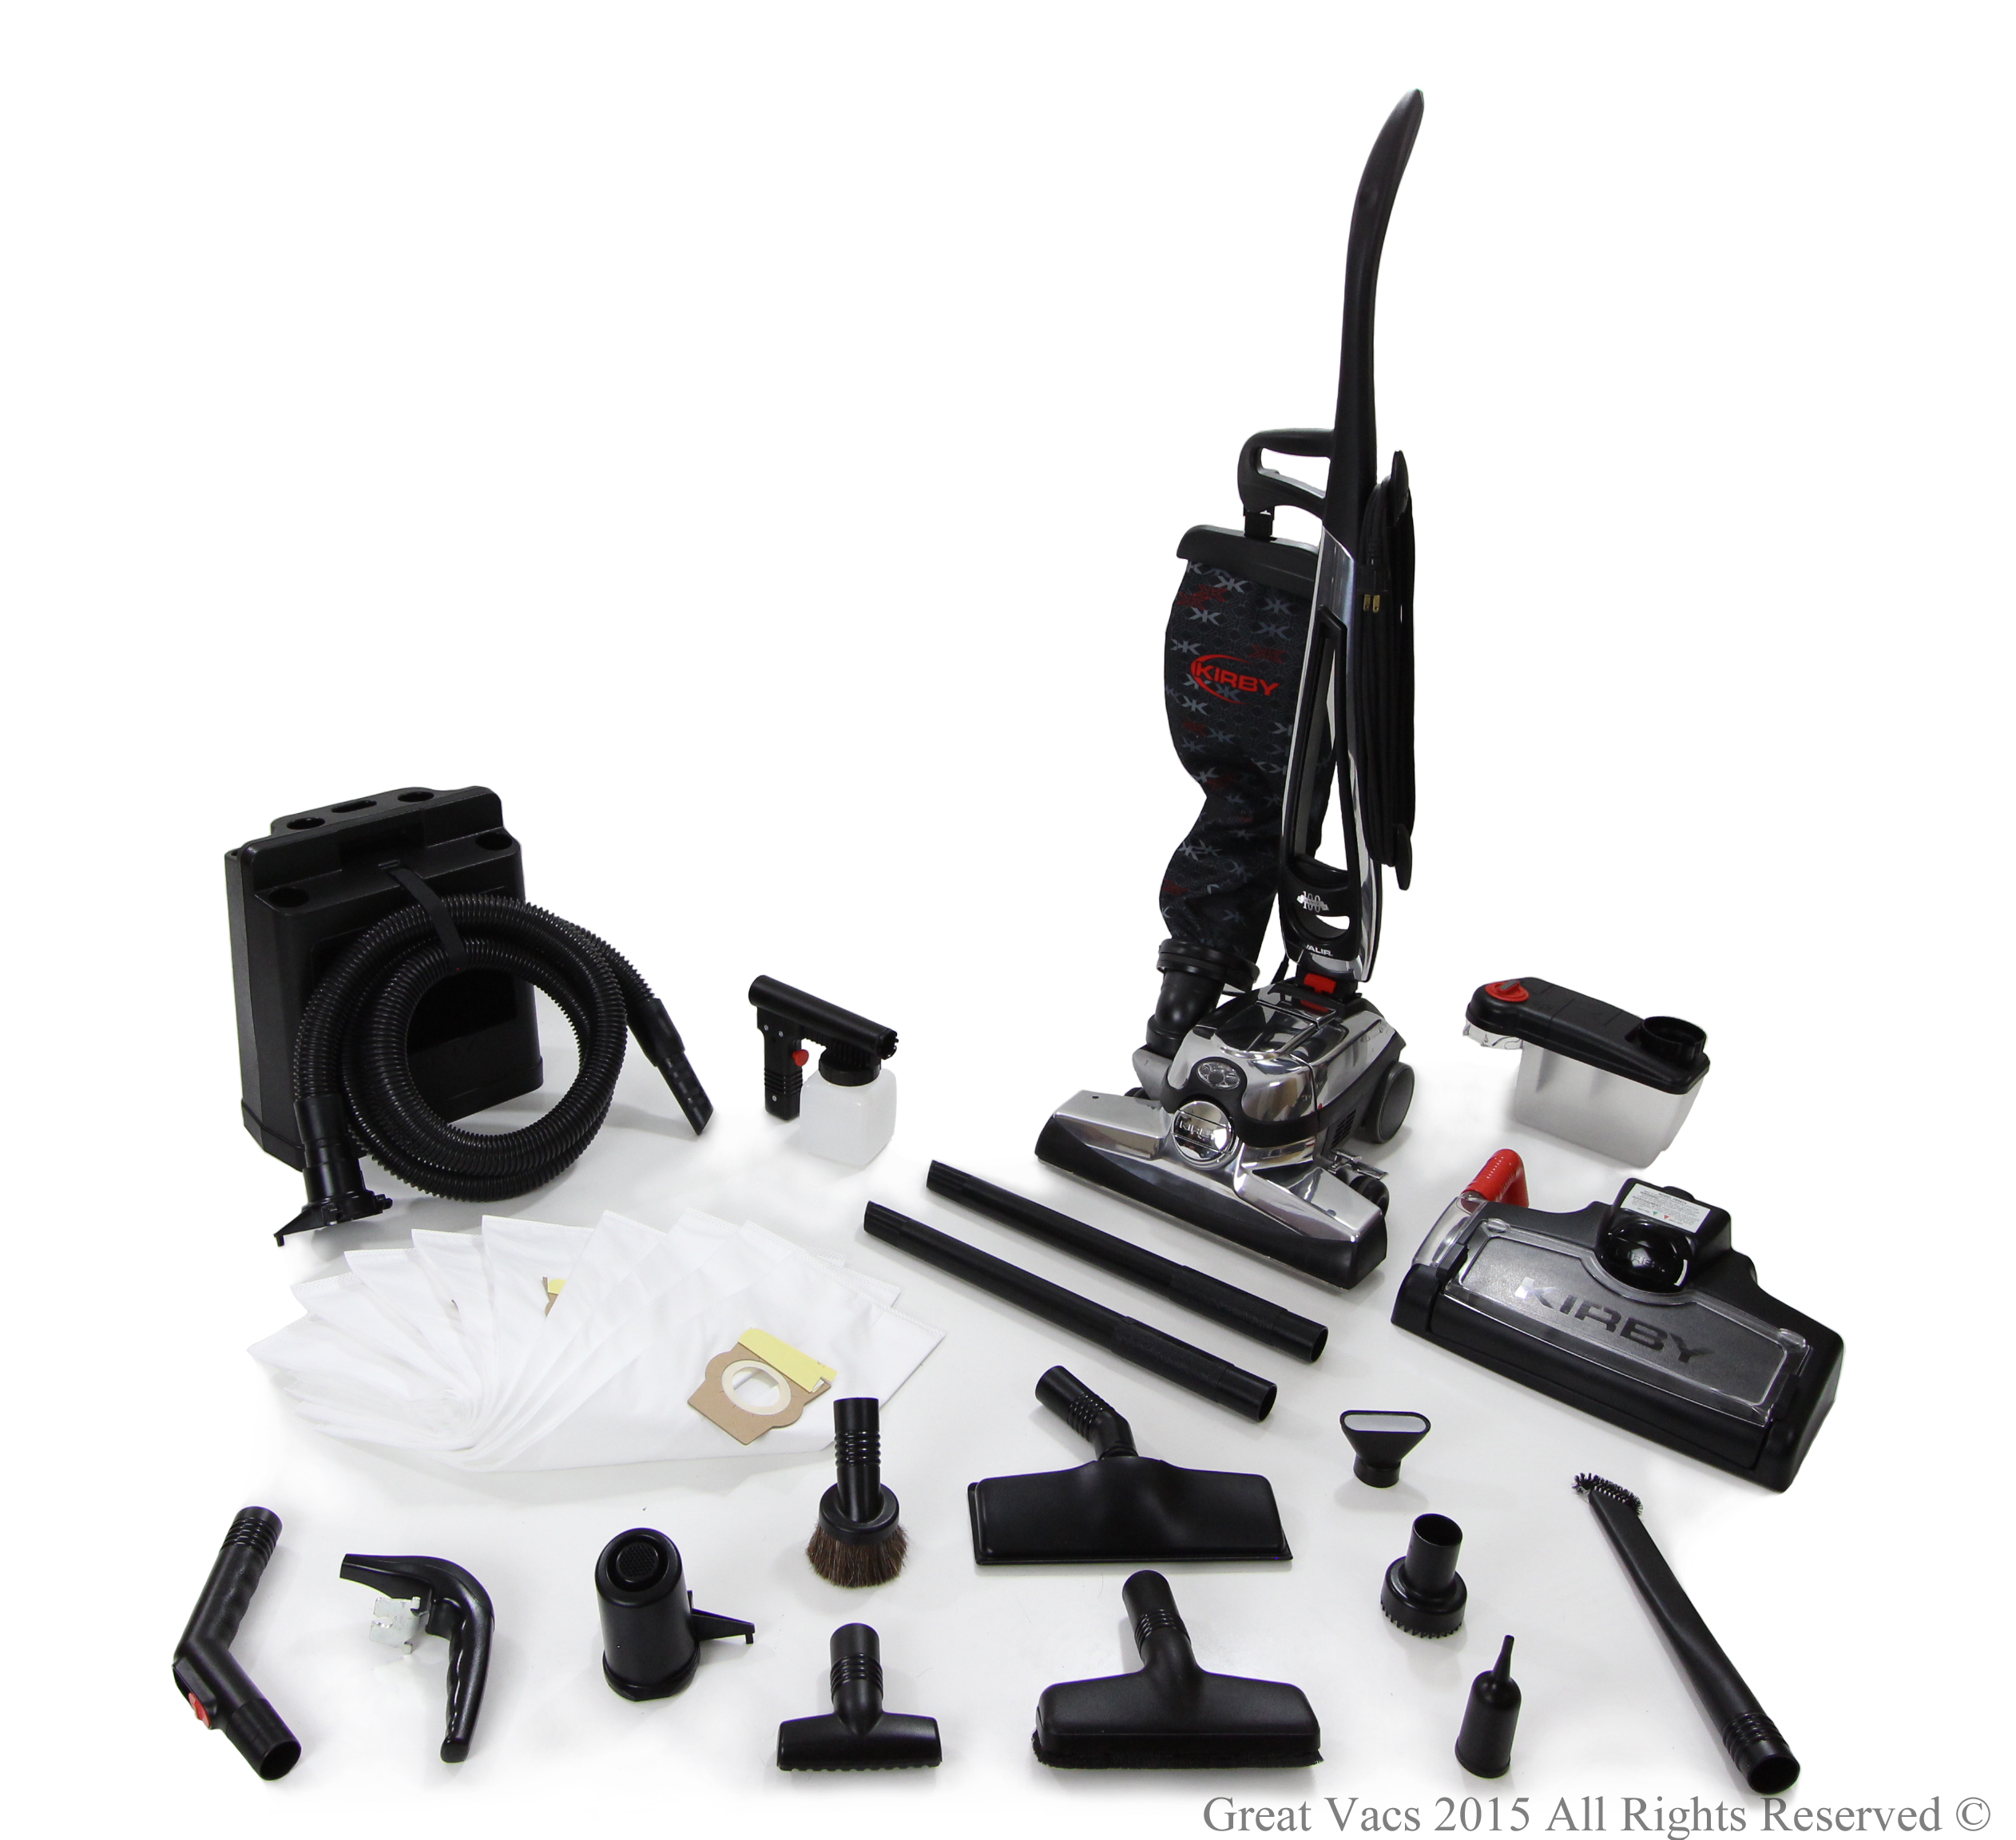 Refurbished Kirby Avalir Vacuum Cleaner Loaded with tools, bags, shampooer Upright G11 Hepa